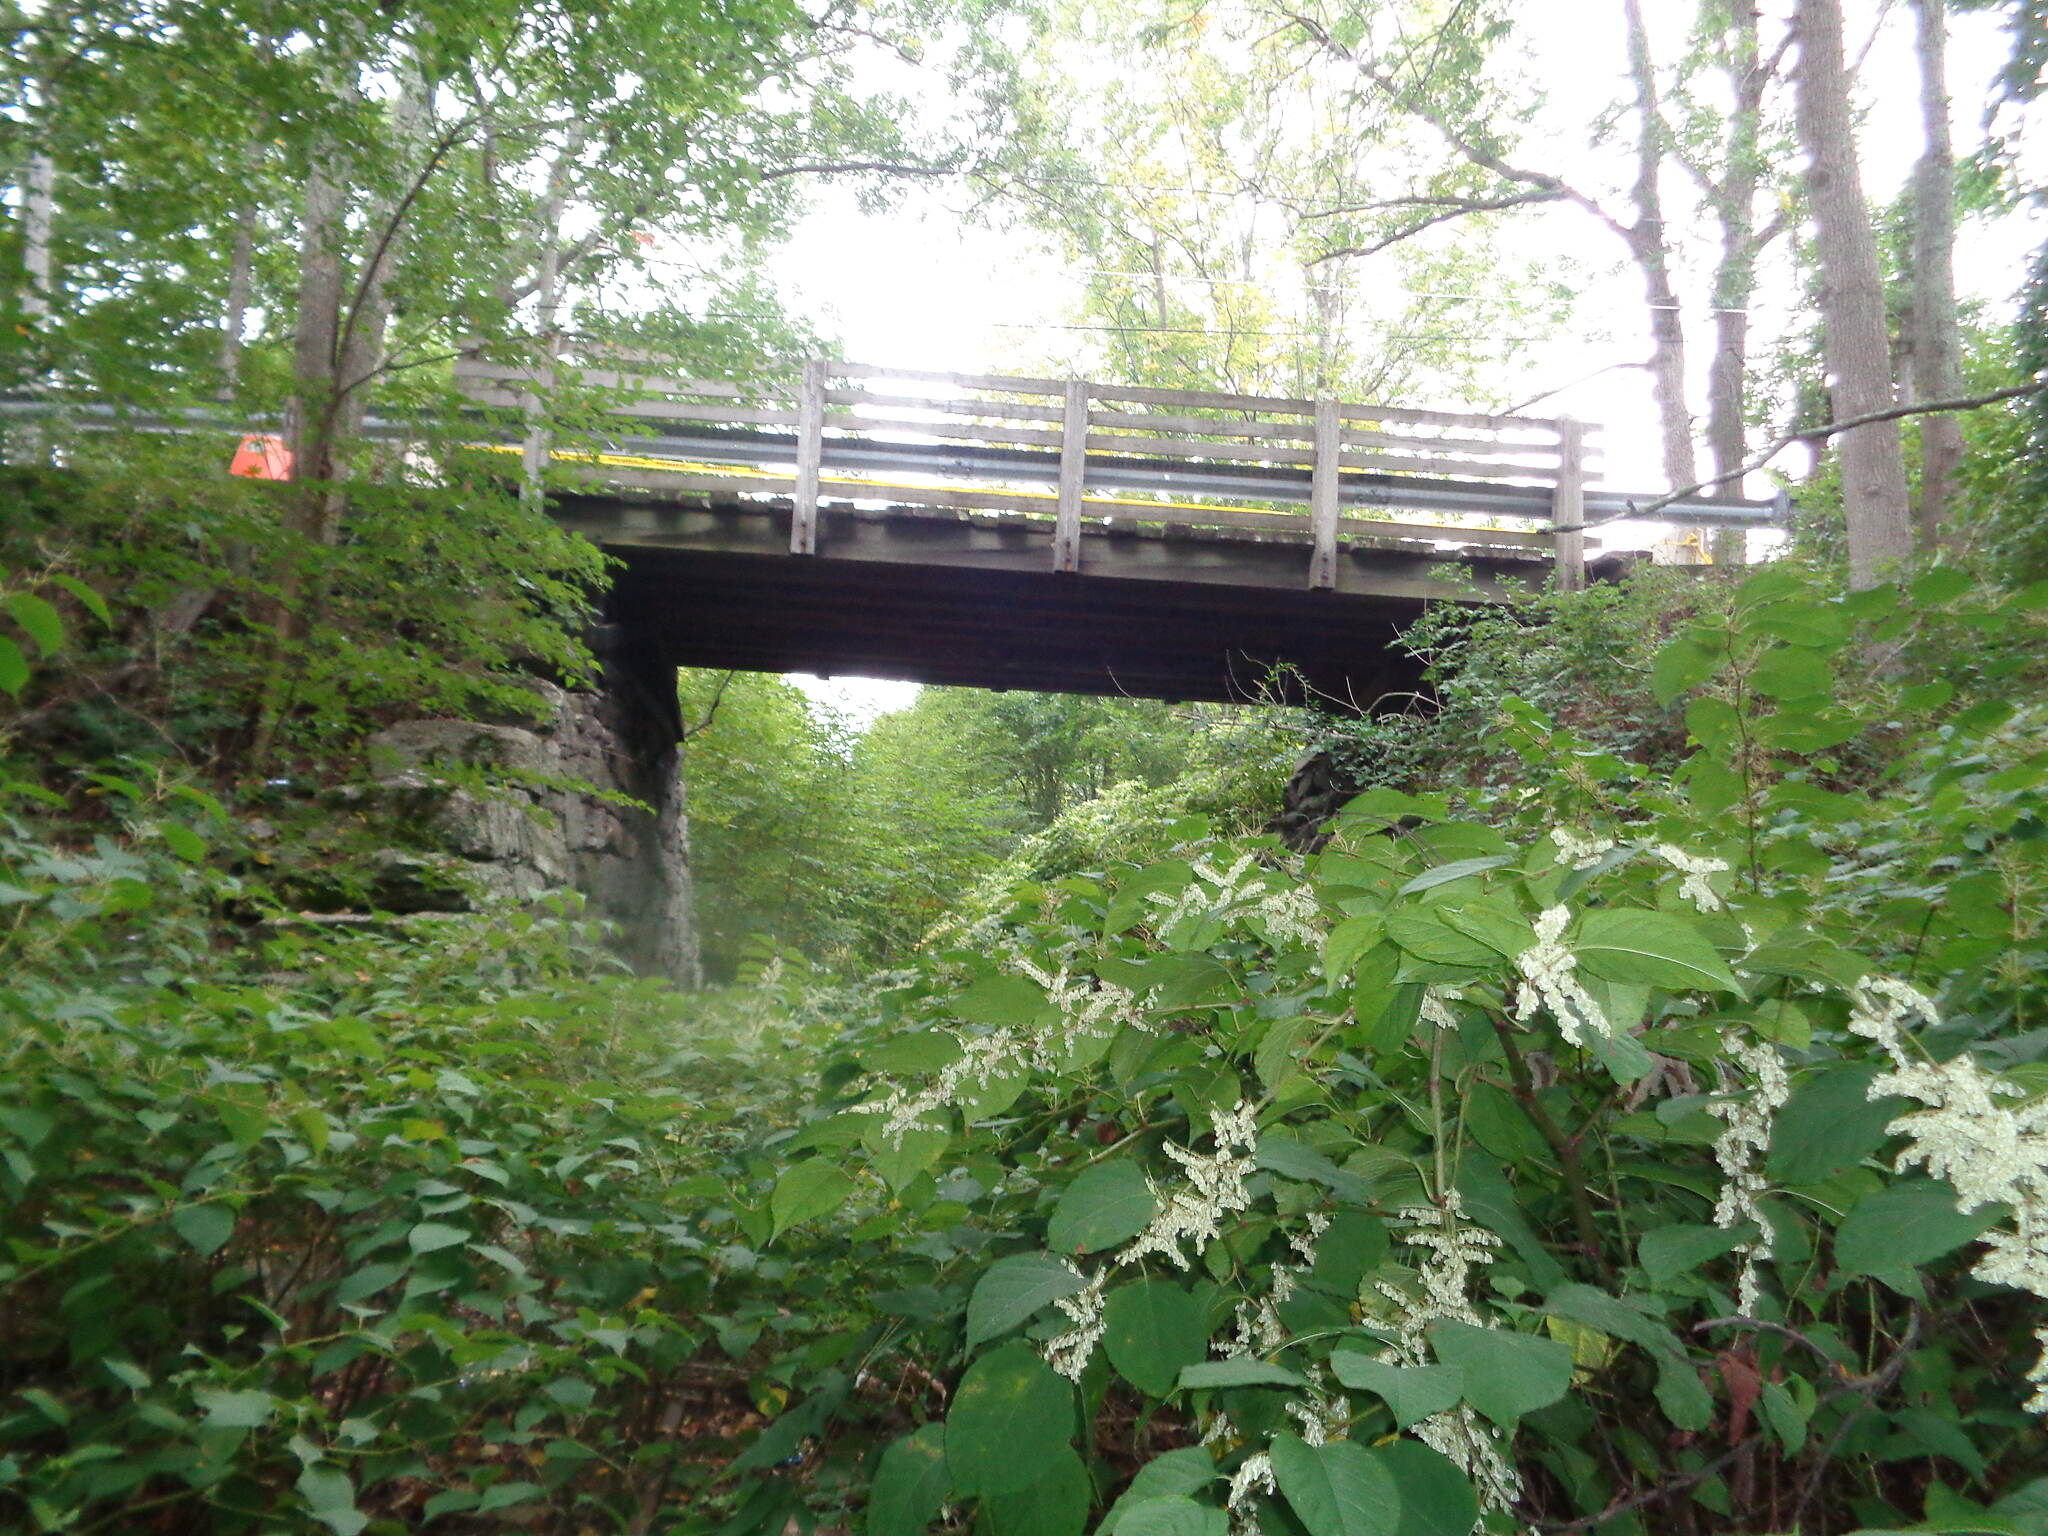 Grand Trunk Trail Carpenters Rd bridge View looking west under the Carpenters Road Bridge, Dudley. Bridge is closed to traffic. It is proposed to replace it with a fill.